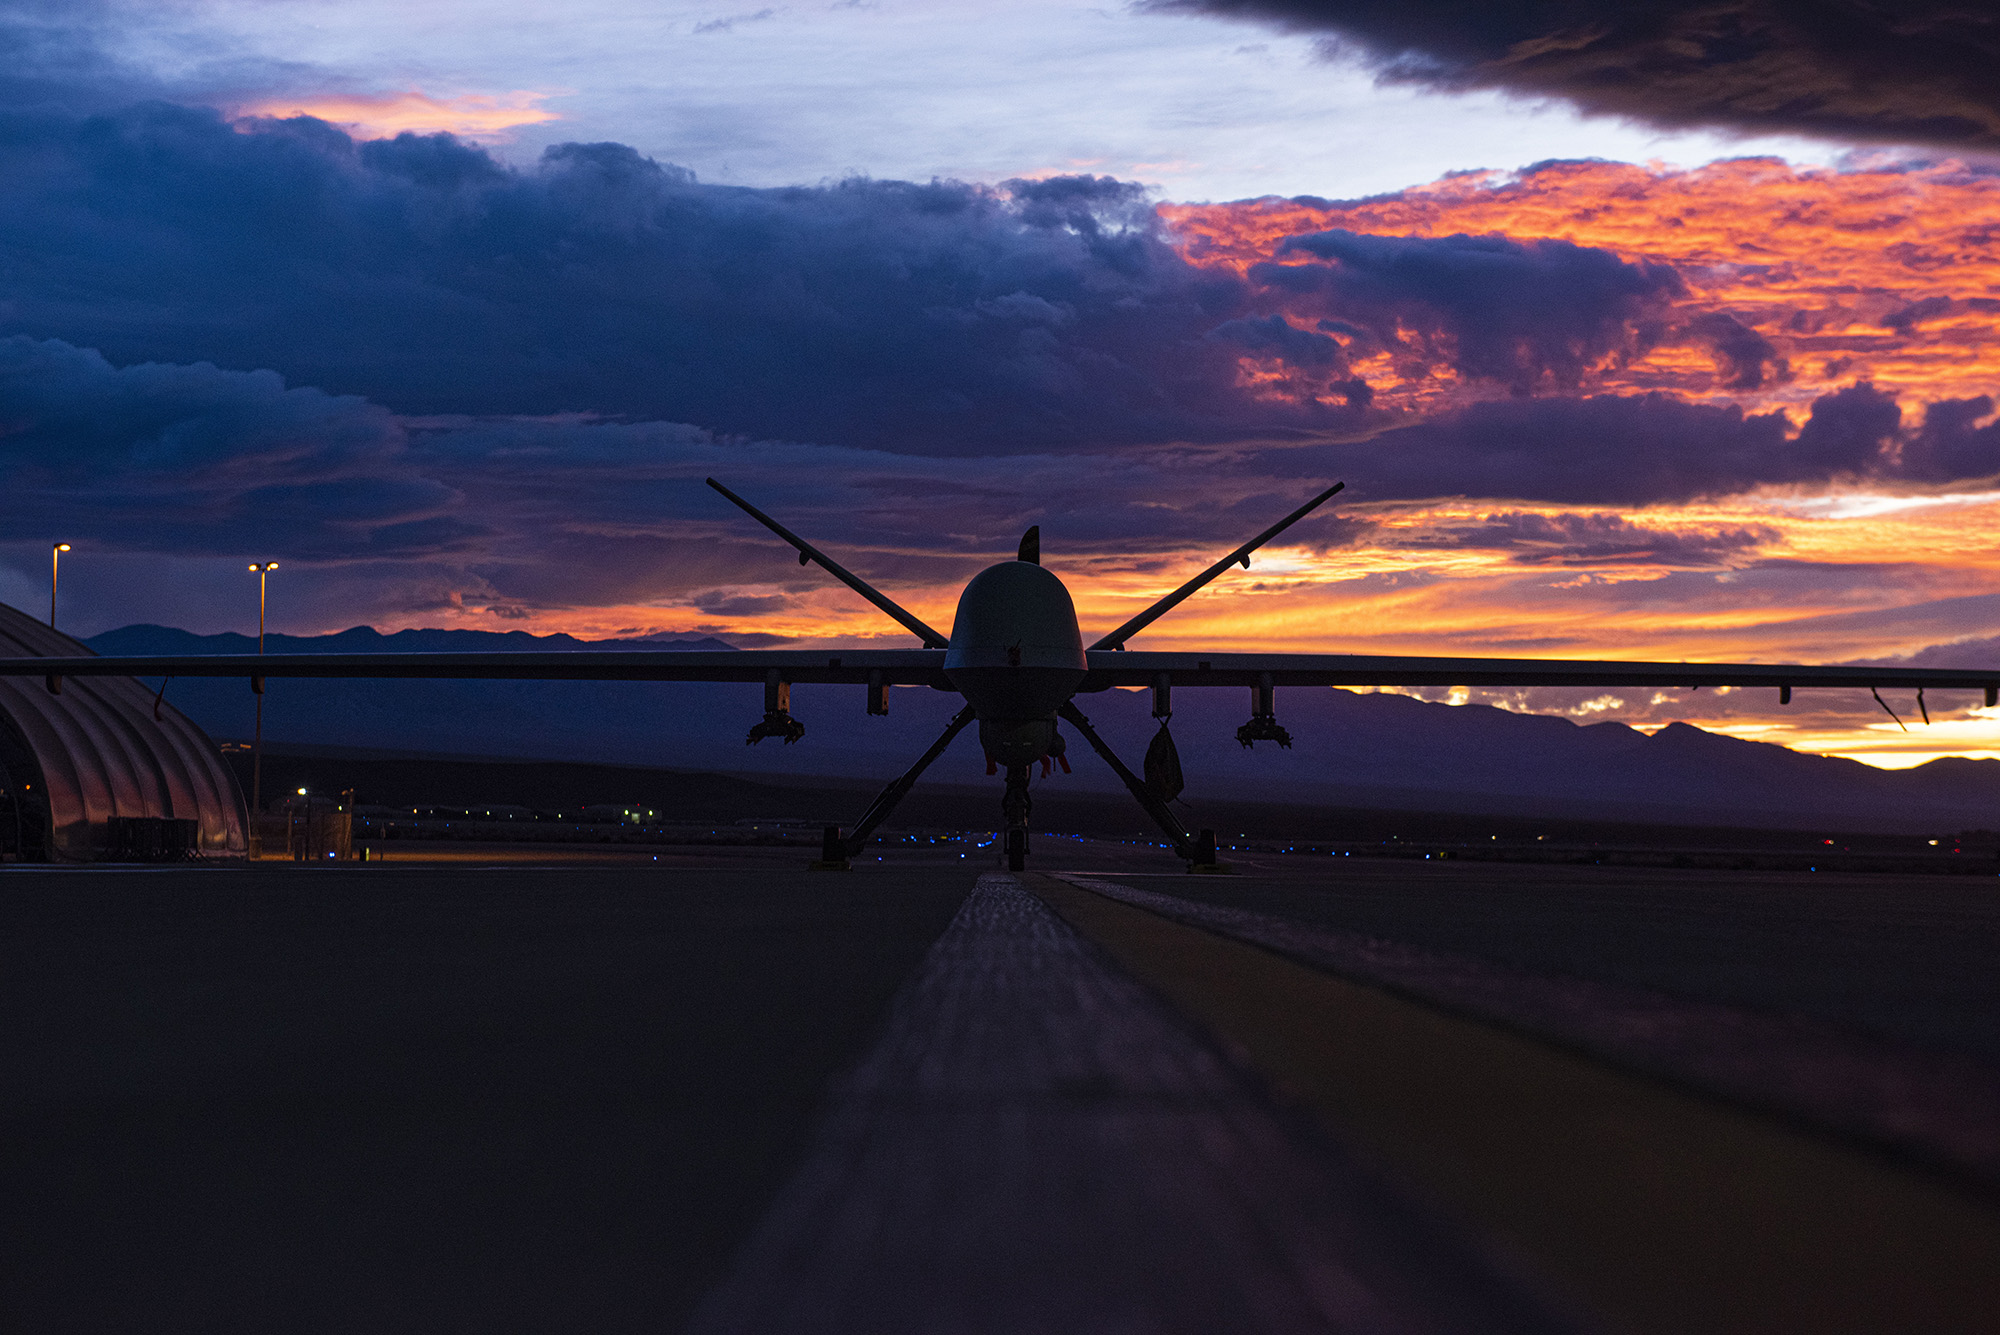 An MQ-9 Reaper sits on the flight line Nov. 20, 2019, as the sun sets at Creech Air Force Base, Nev. (Master Sgt. Dillon White/Air Force)